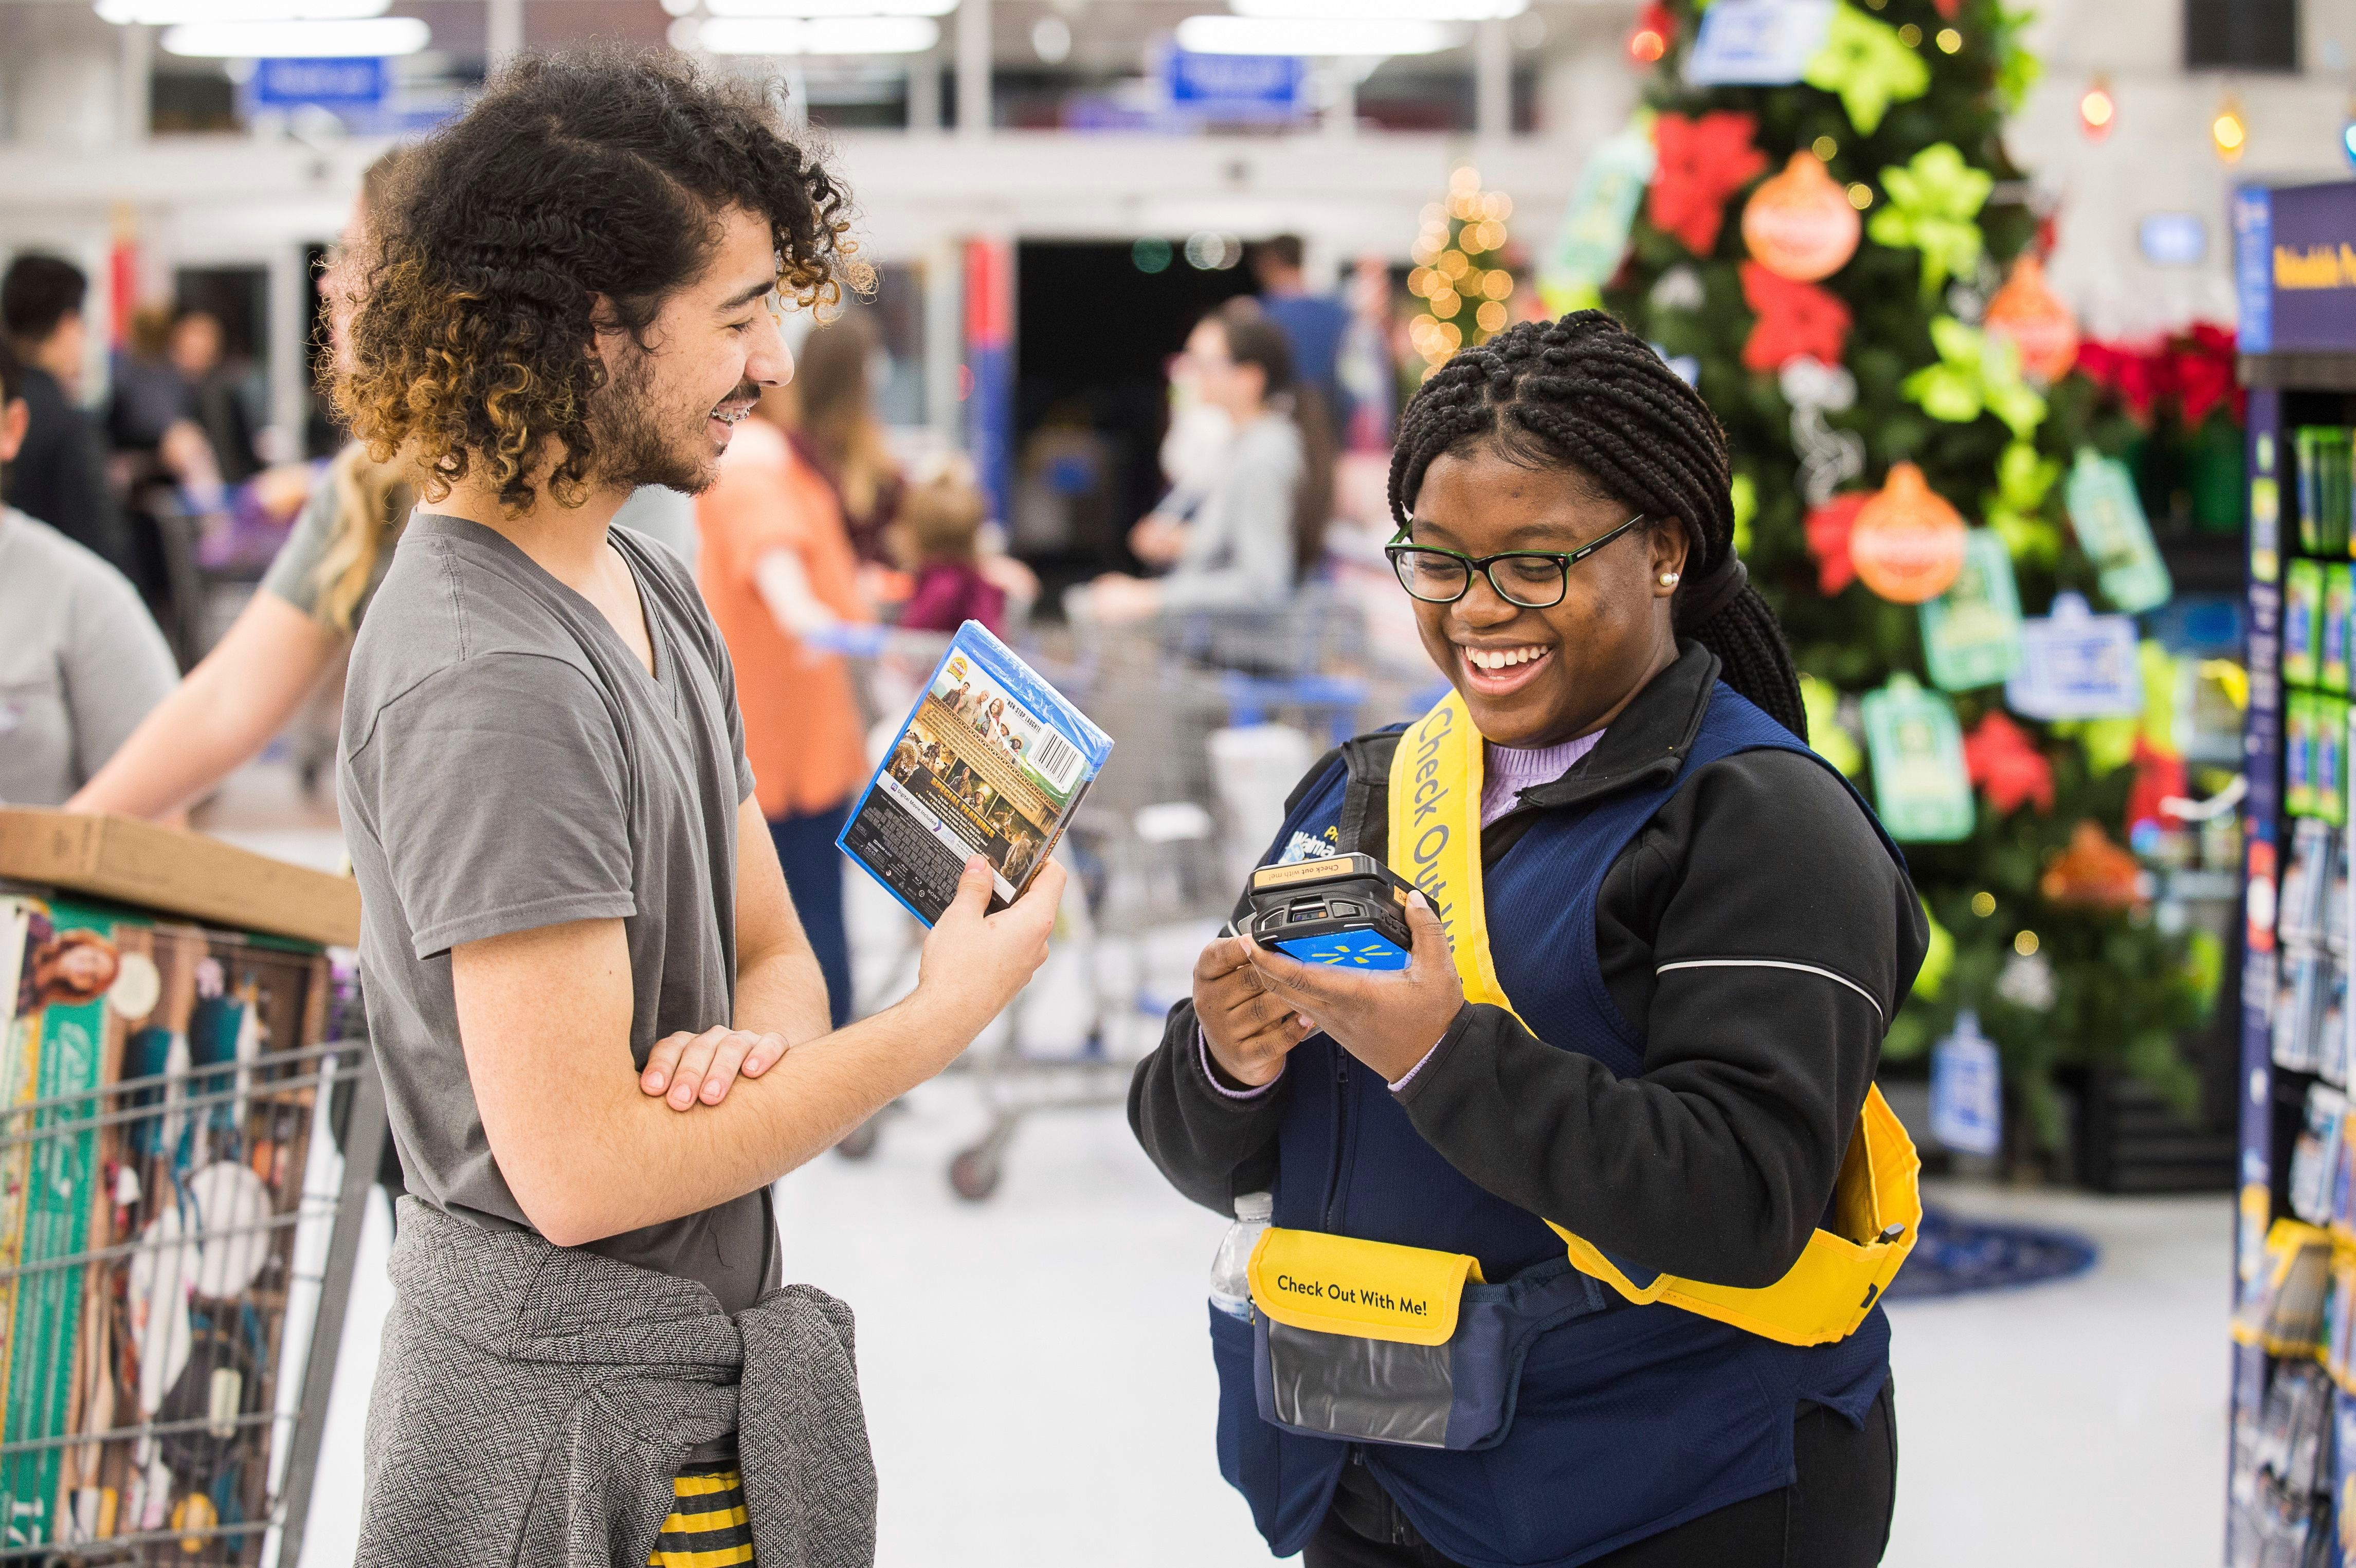 Walmart customer makes a purchase with a Check Out With Me Associate on in Bentonville, ArkWalmart Black Friday In-Store Event, Bentonville, USA - 22 Nov 2018